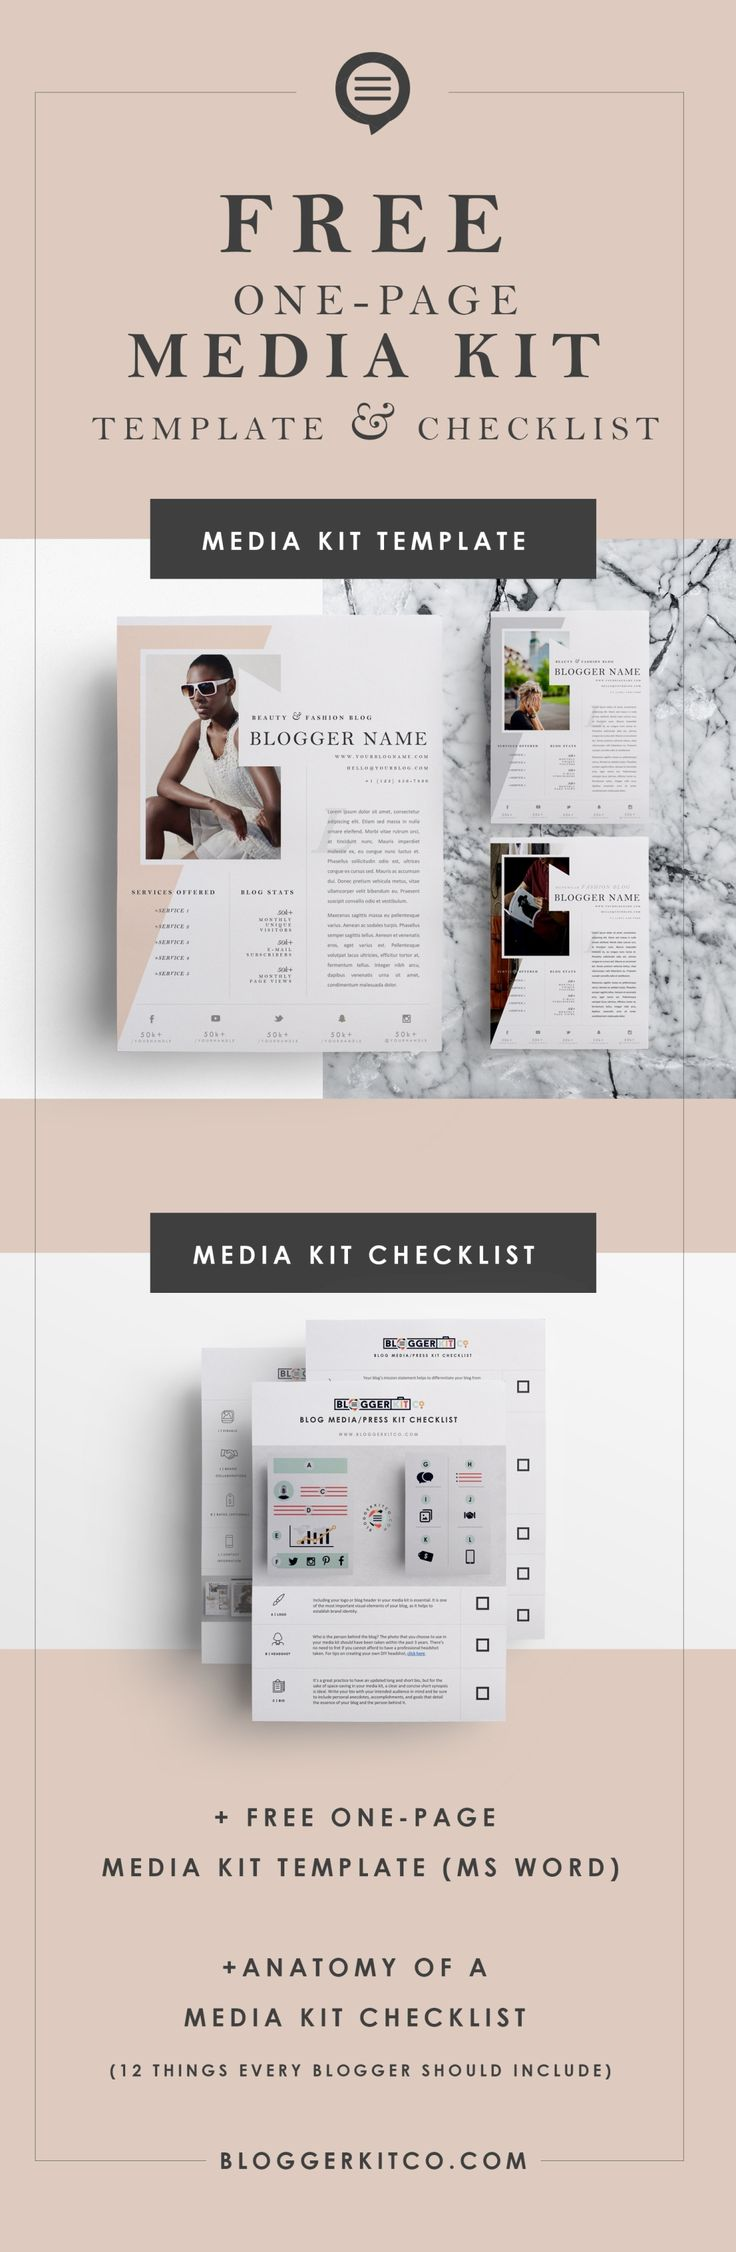 Awesome 1 Page Resume Format For Freshers Big 1 Year Experienced Java Resume Rectangular 1 Year Experienced Software Developer Resume Sample 10 Steps Writing Resume Young 10 Tips To Write A Good Resume White1500 Claim Form Template 25  Best Ideas About Checklist Template On Pinterest | House ..